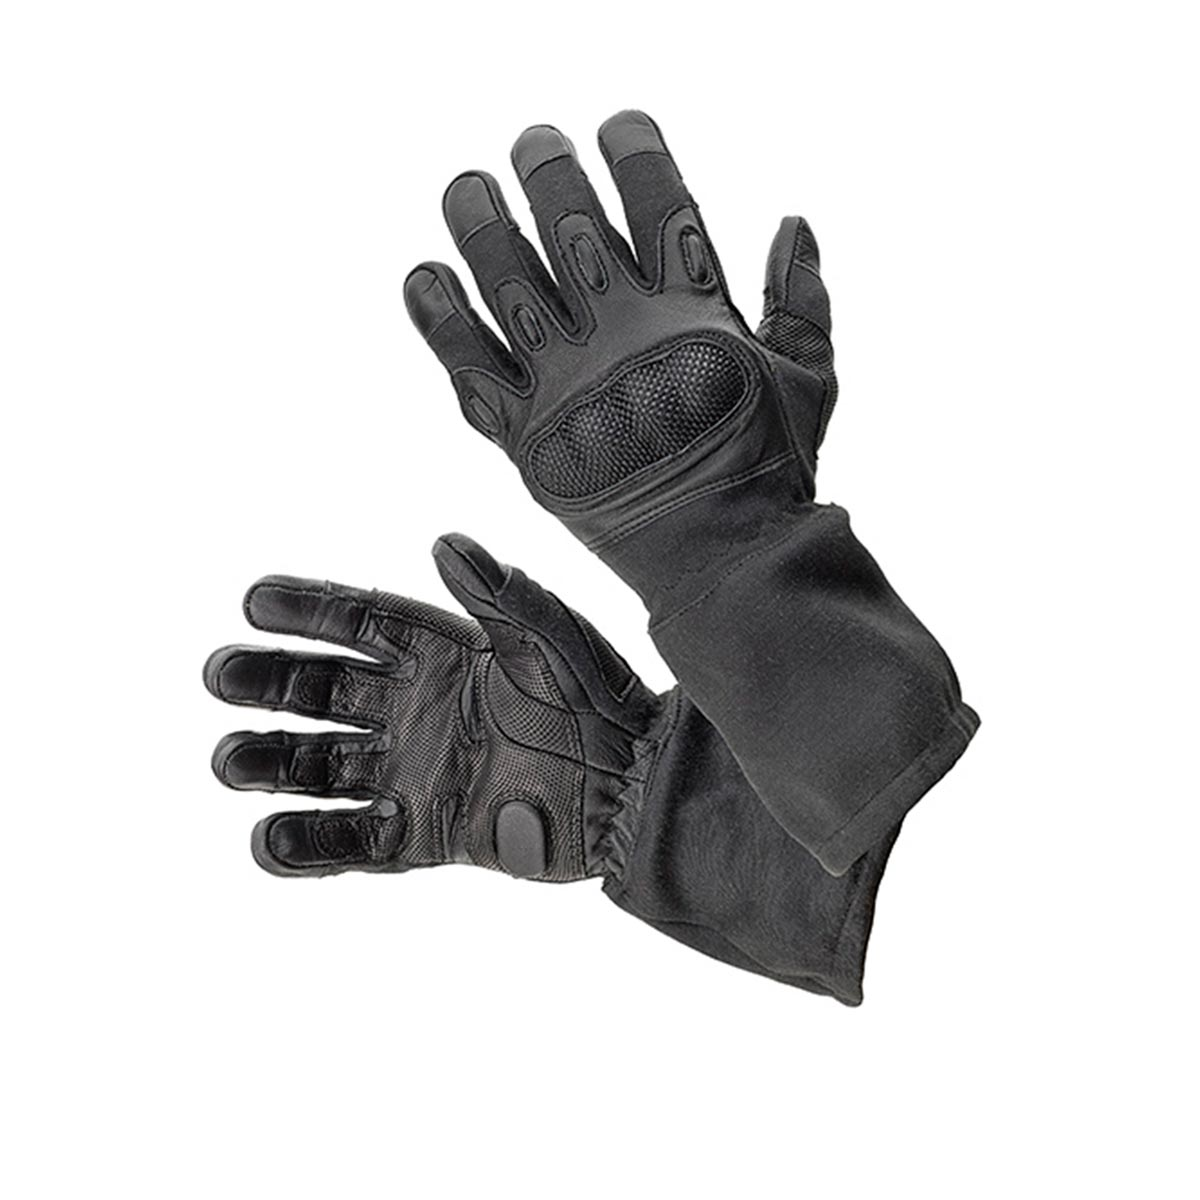 DEFCON 5 GLOVE DOUBLE KEVLAR PROTECTION RIGIDE